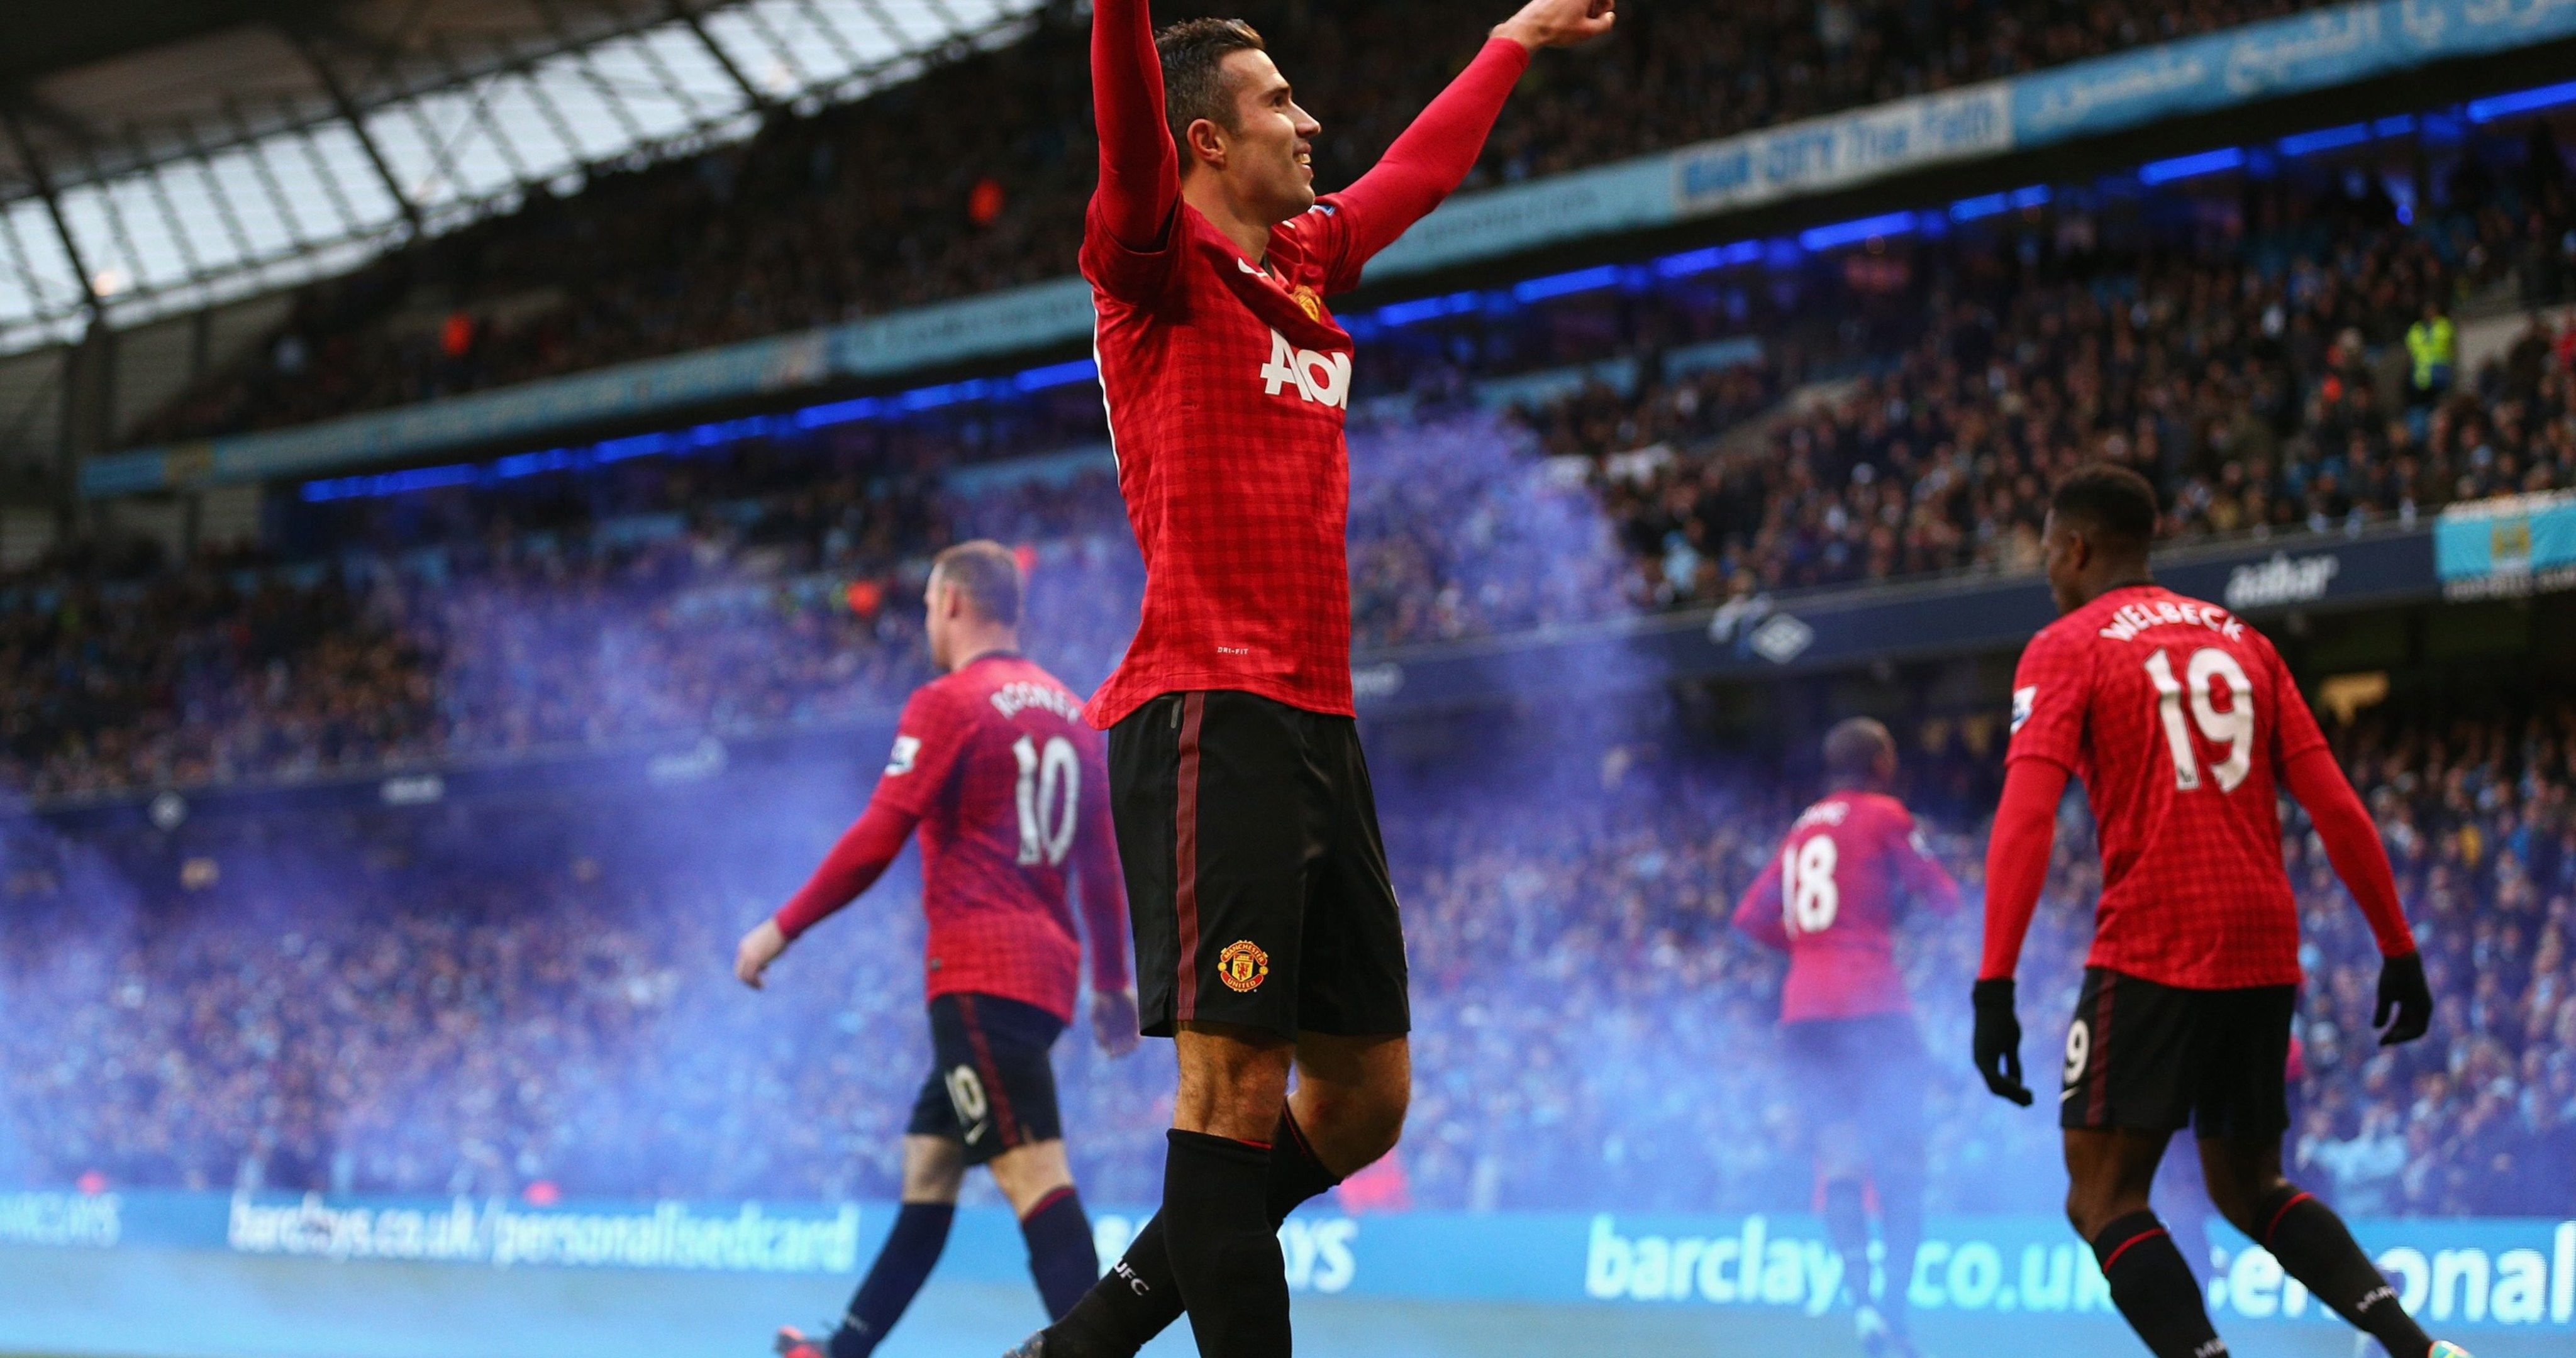 Robin Van Persie Manchester United Club 4k Ultra Hd Wallpaper Manchester United Premier League Robin Van Persie Manchester United Club